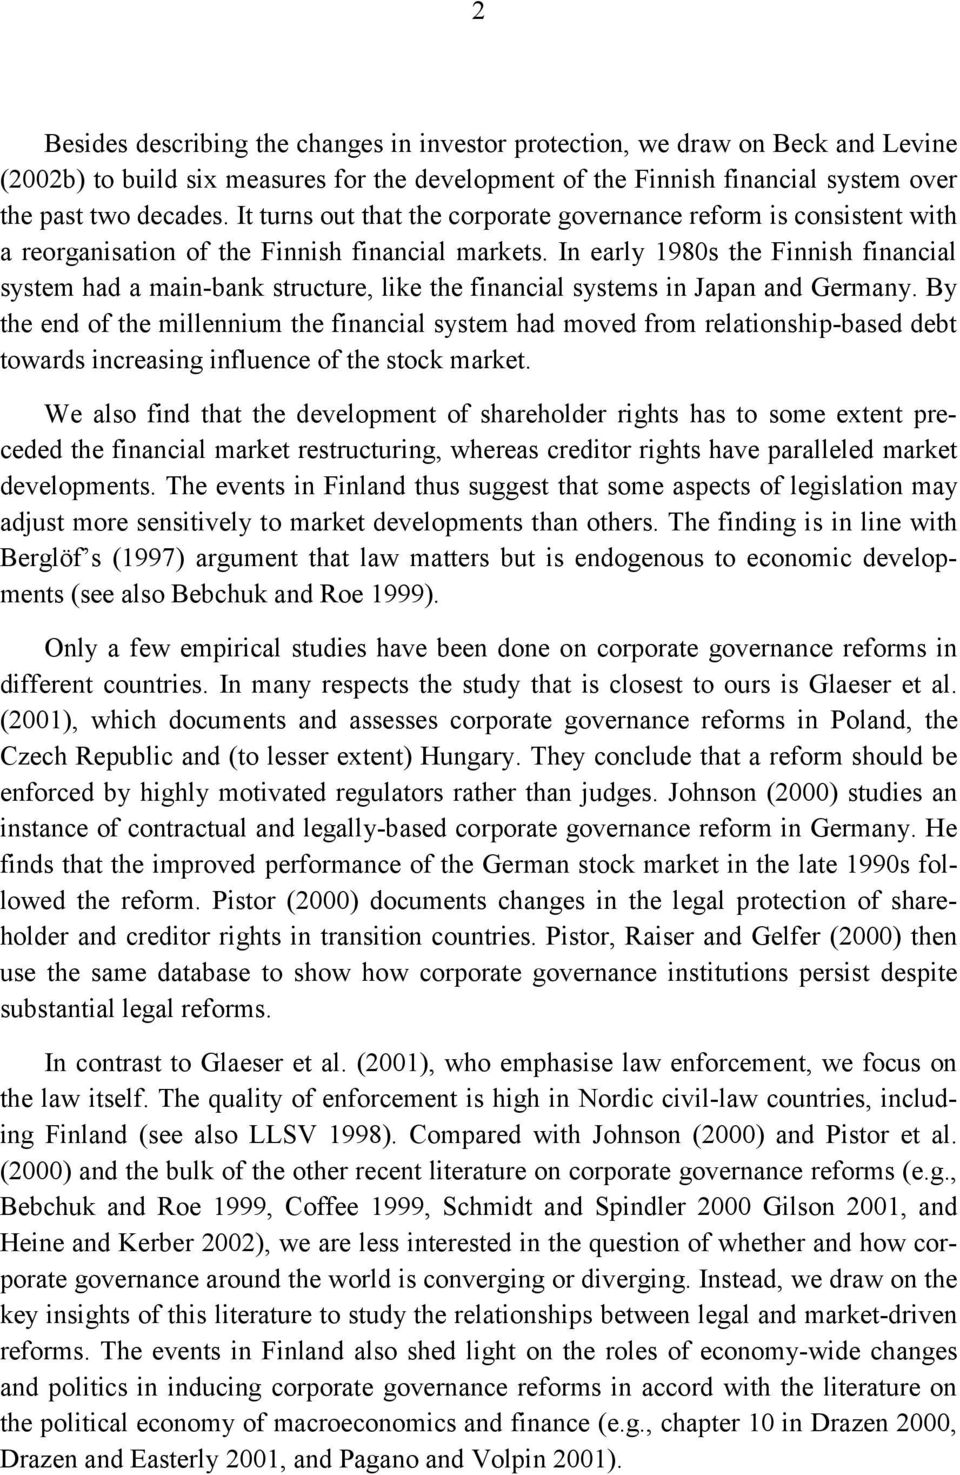 In early 1980s the Finnish financial system had a main-bank structure, like the financial systems in Japan and Germany.